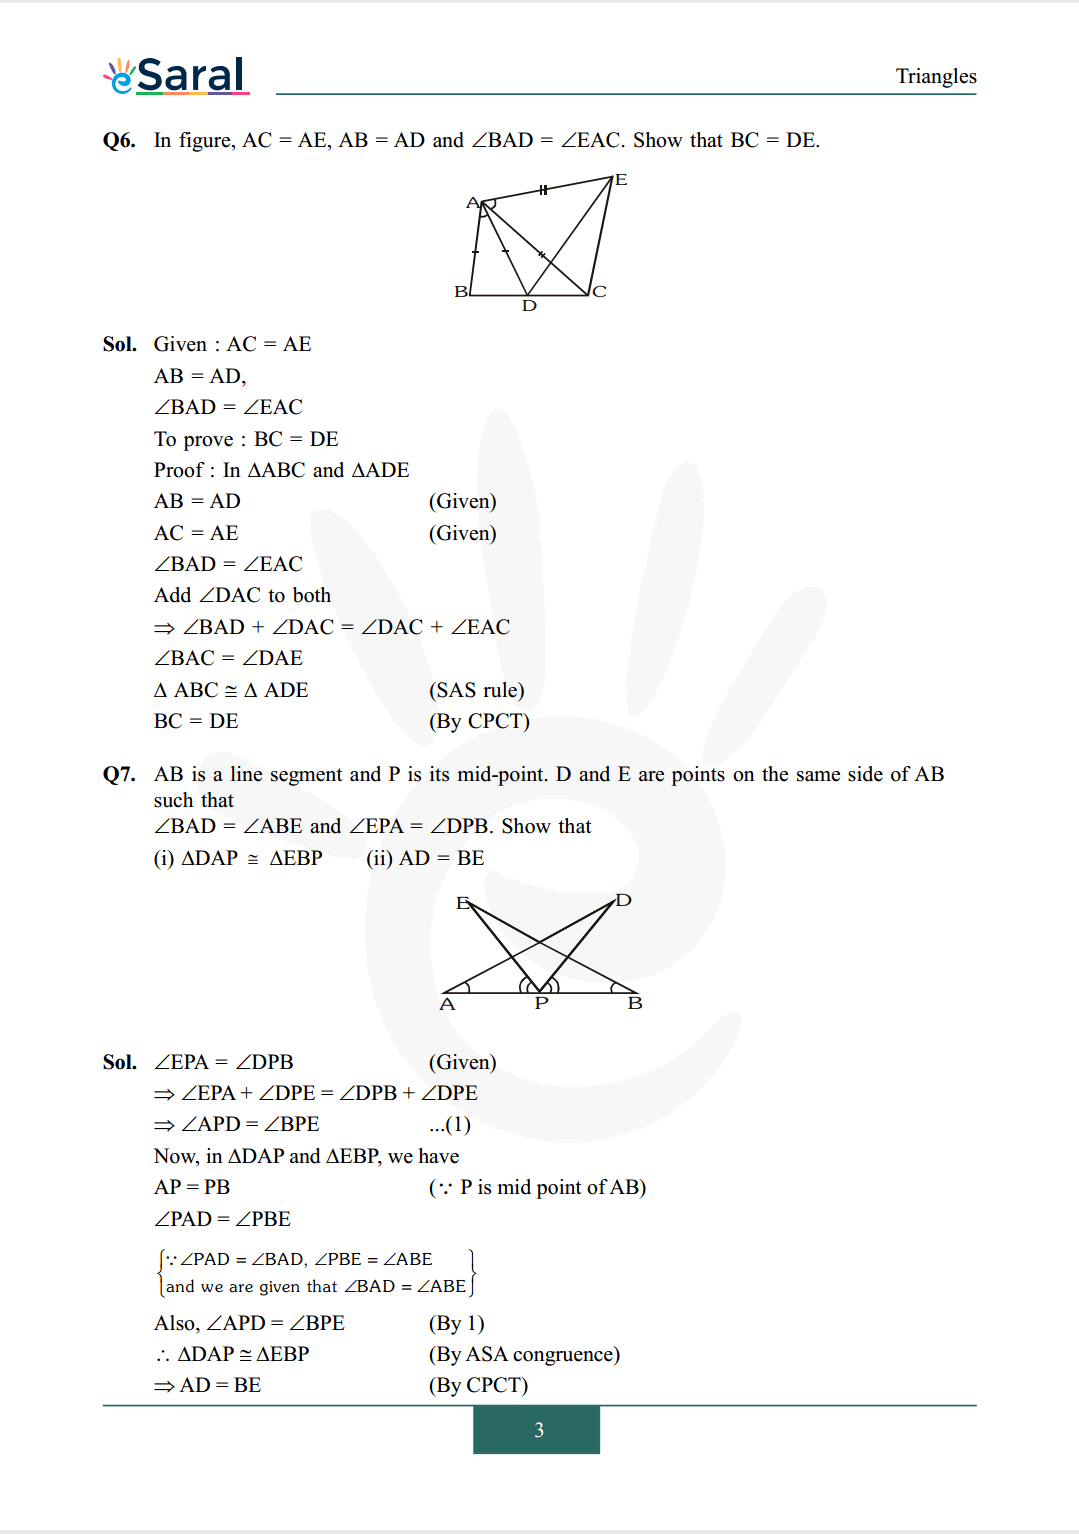 Class 9 maths chapter 7 exercise 7.1 solutions Image 3